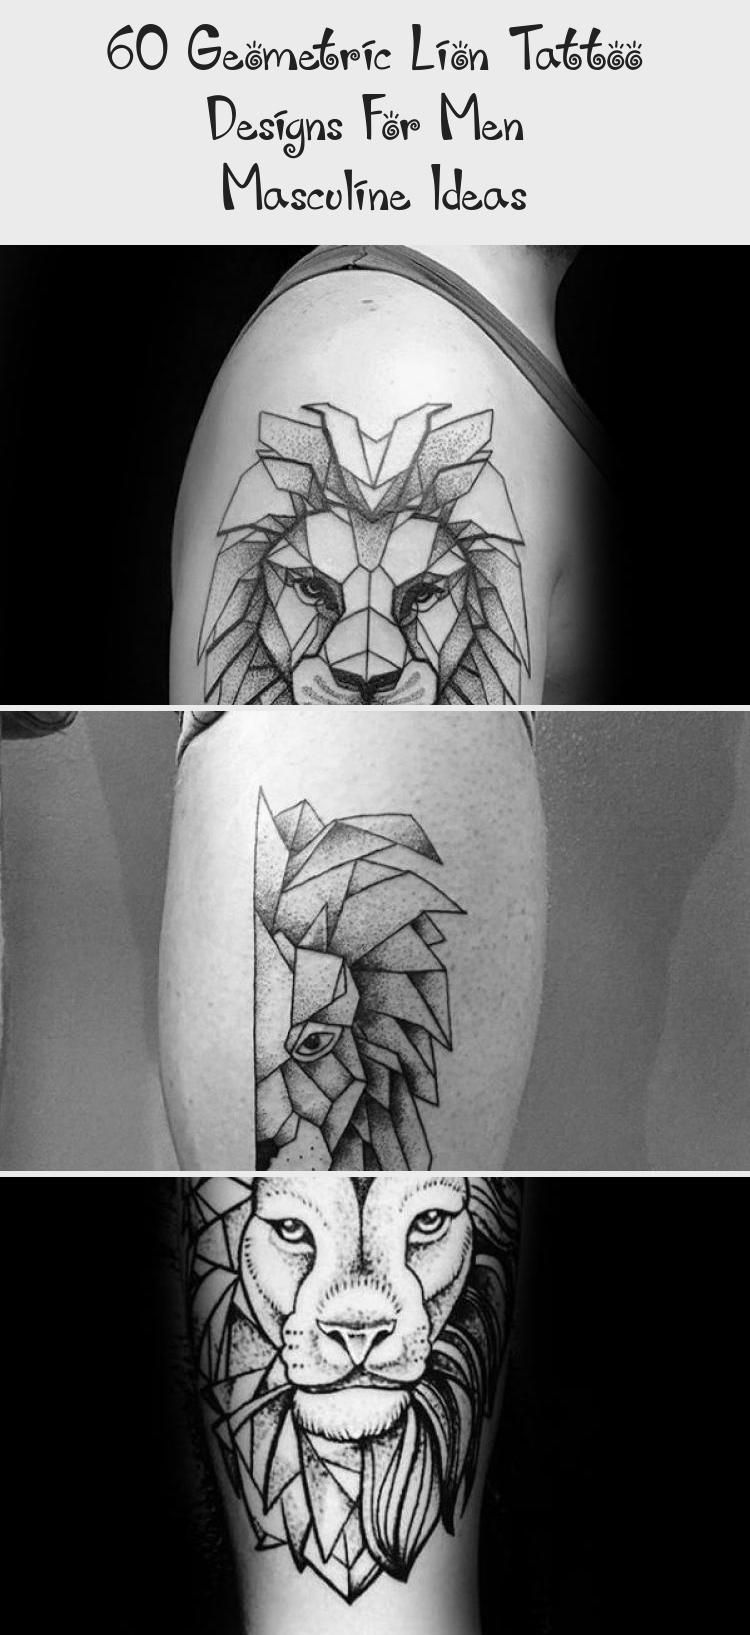 60 Geometric Lion Tattoo Designs For Men  Masculine Ideas  Tattoos  Upper Chest Broken Geometric Lion Tattoo On Men